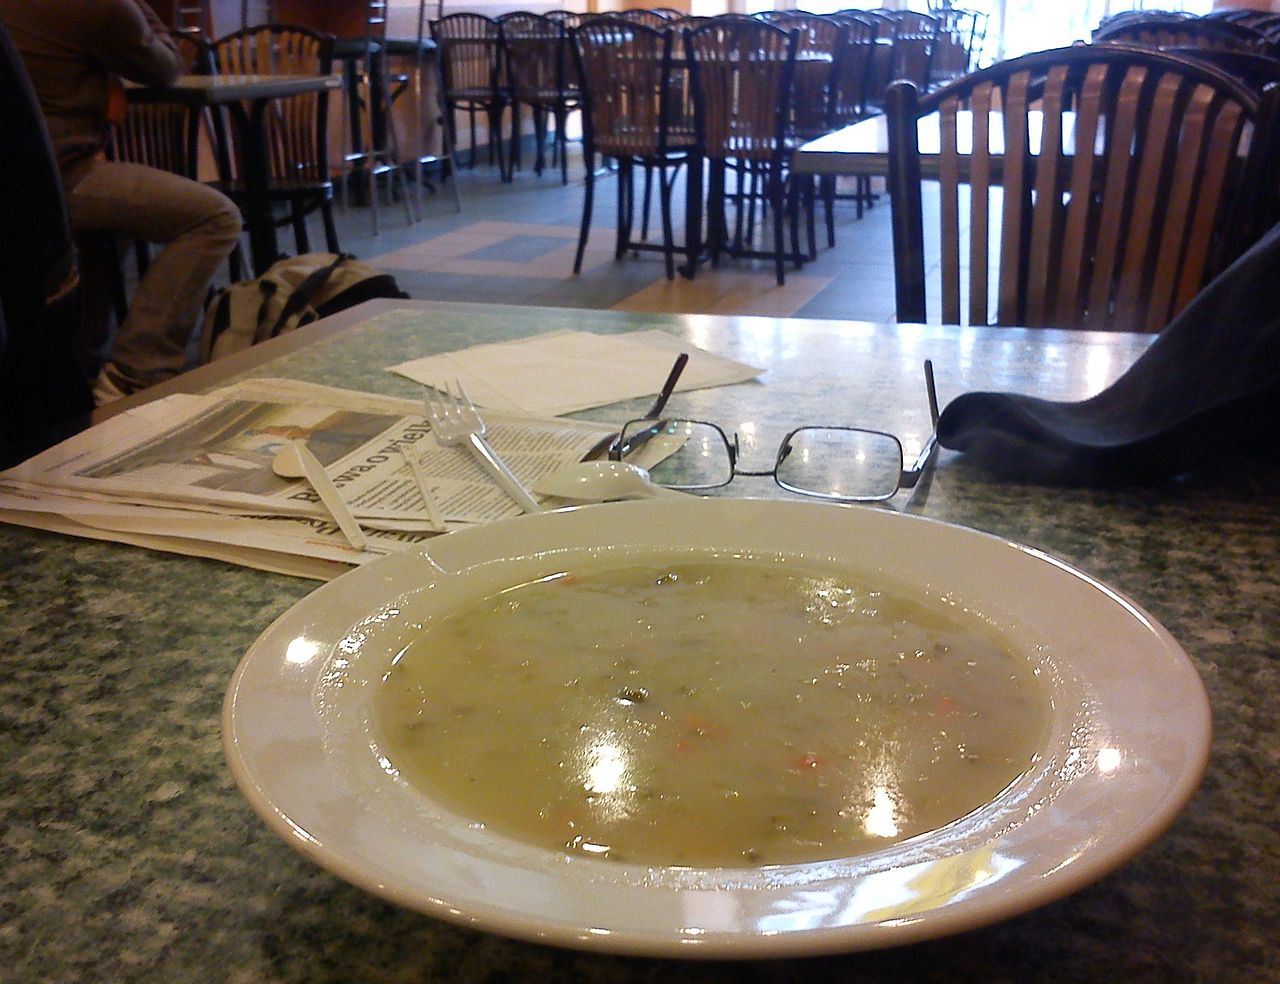 Cucumber soup in a milk bar, Poznan, Poland (Image: MOs810 under a CC licence)